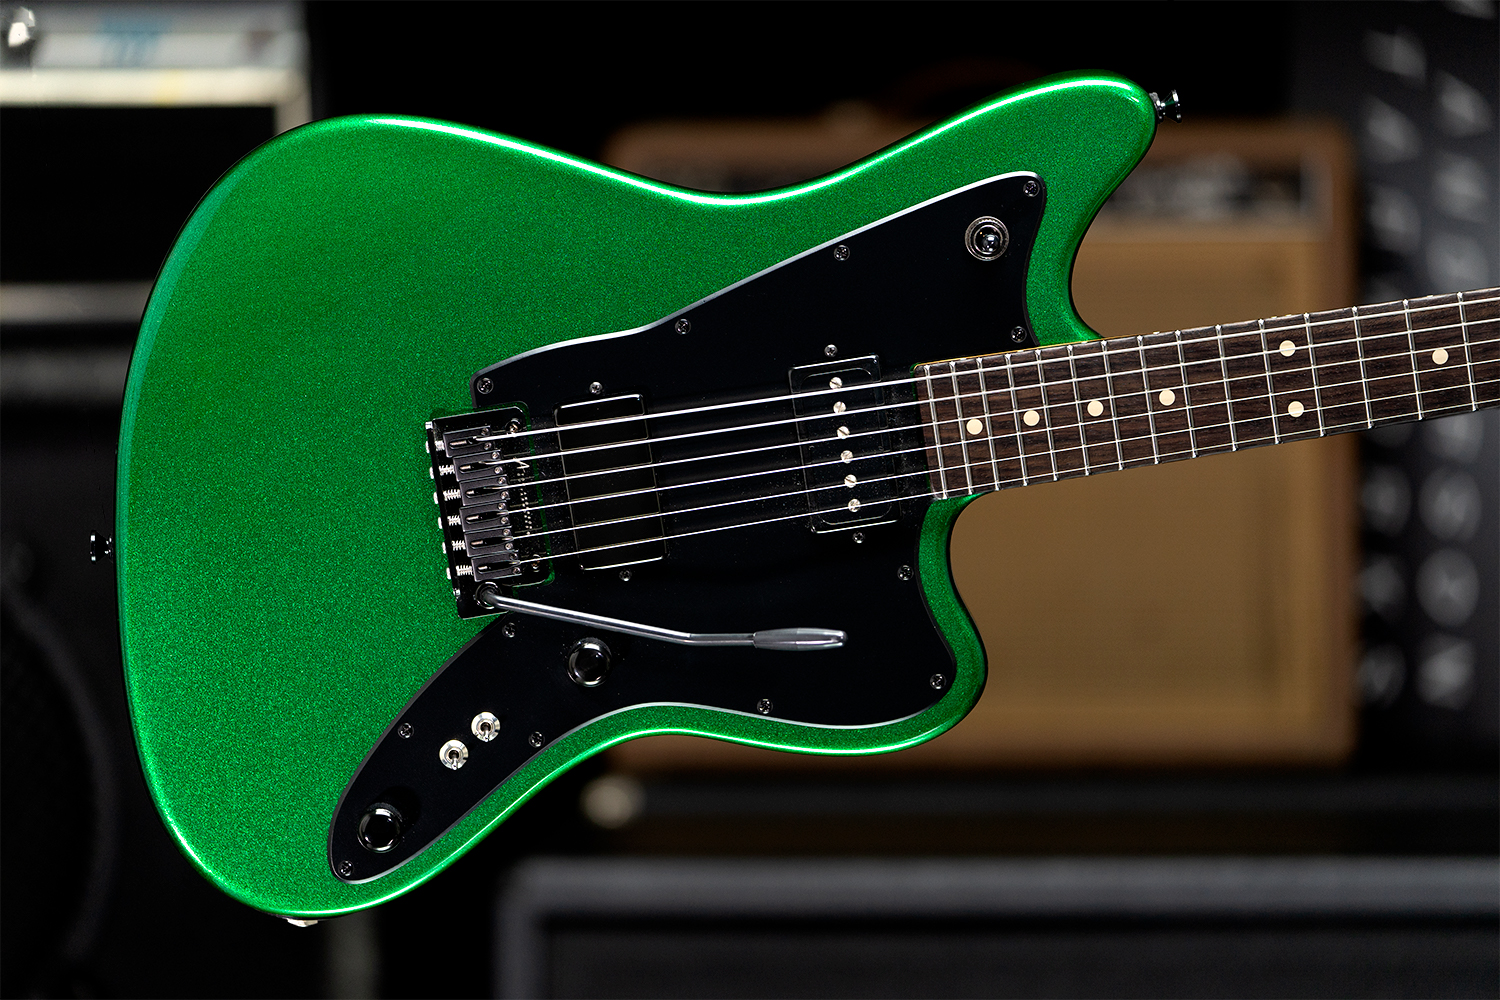 09-19-18A_b_Raven_Metallic Green.jpg